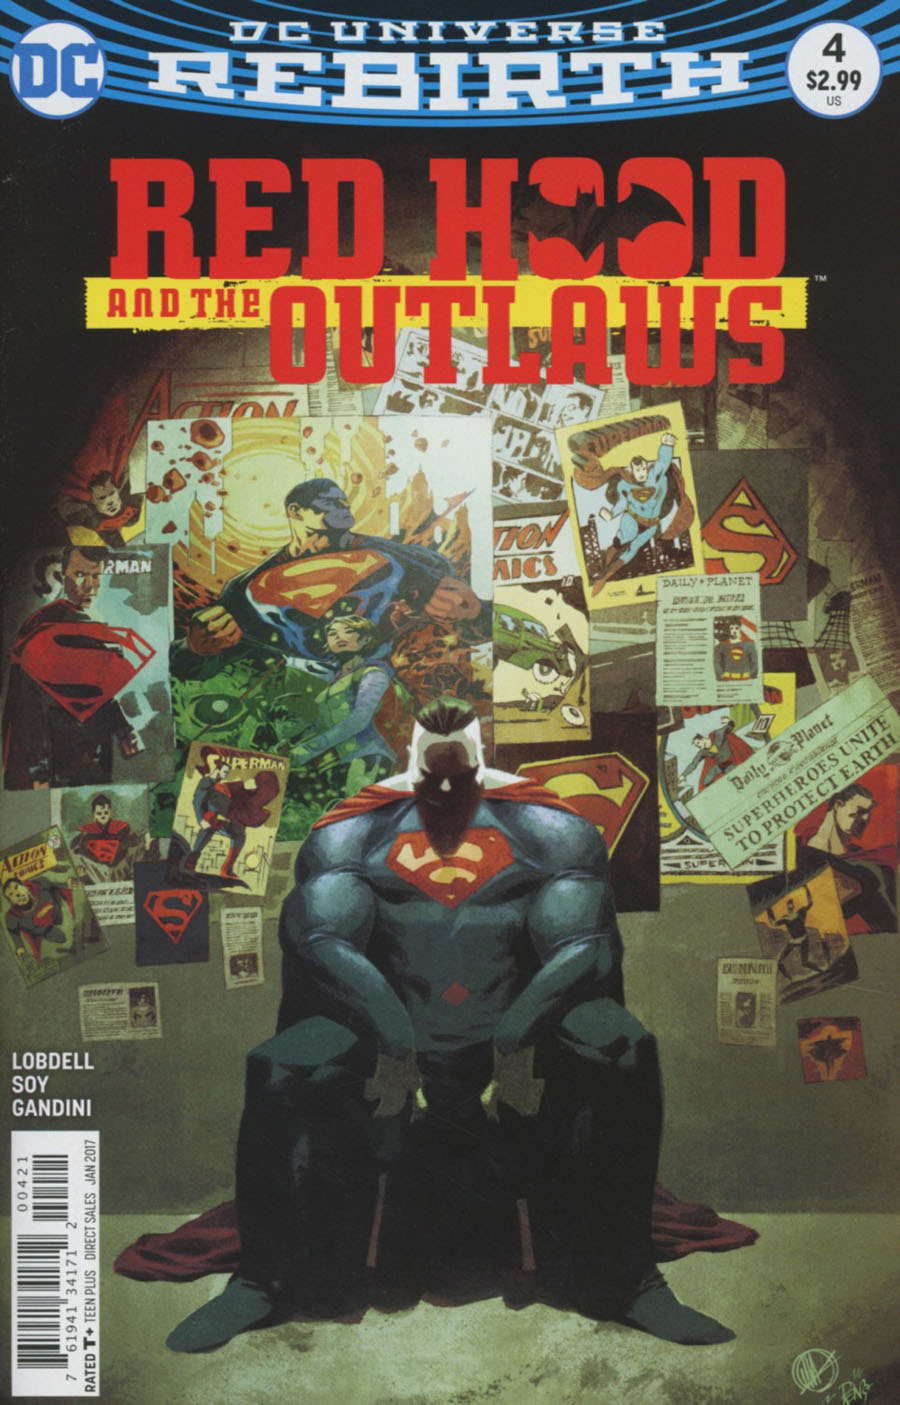 Red Hood & The Outlaws #4